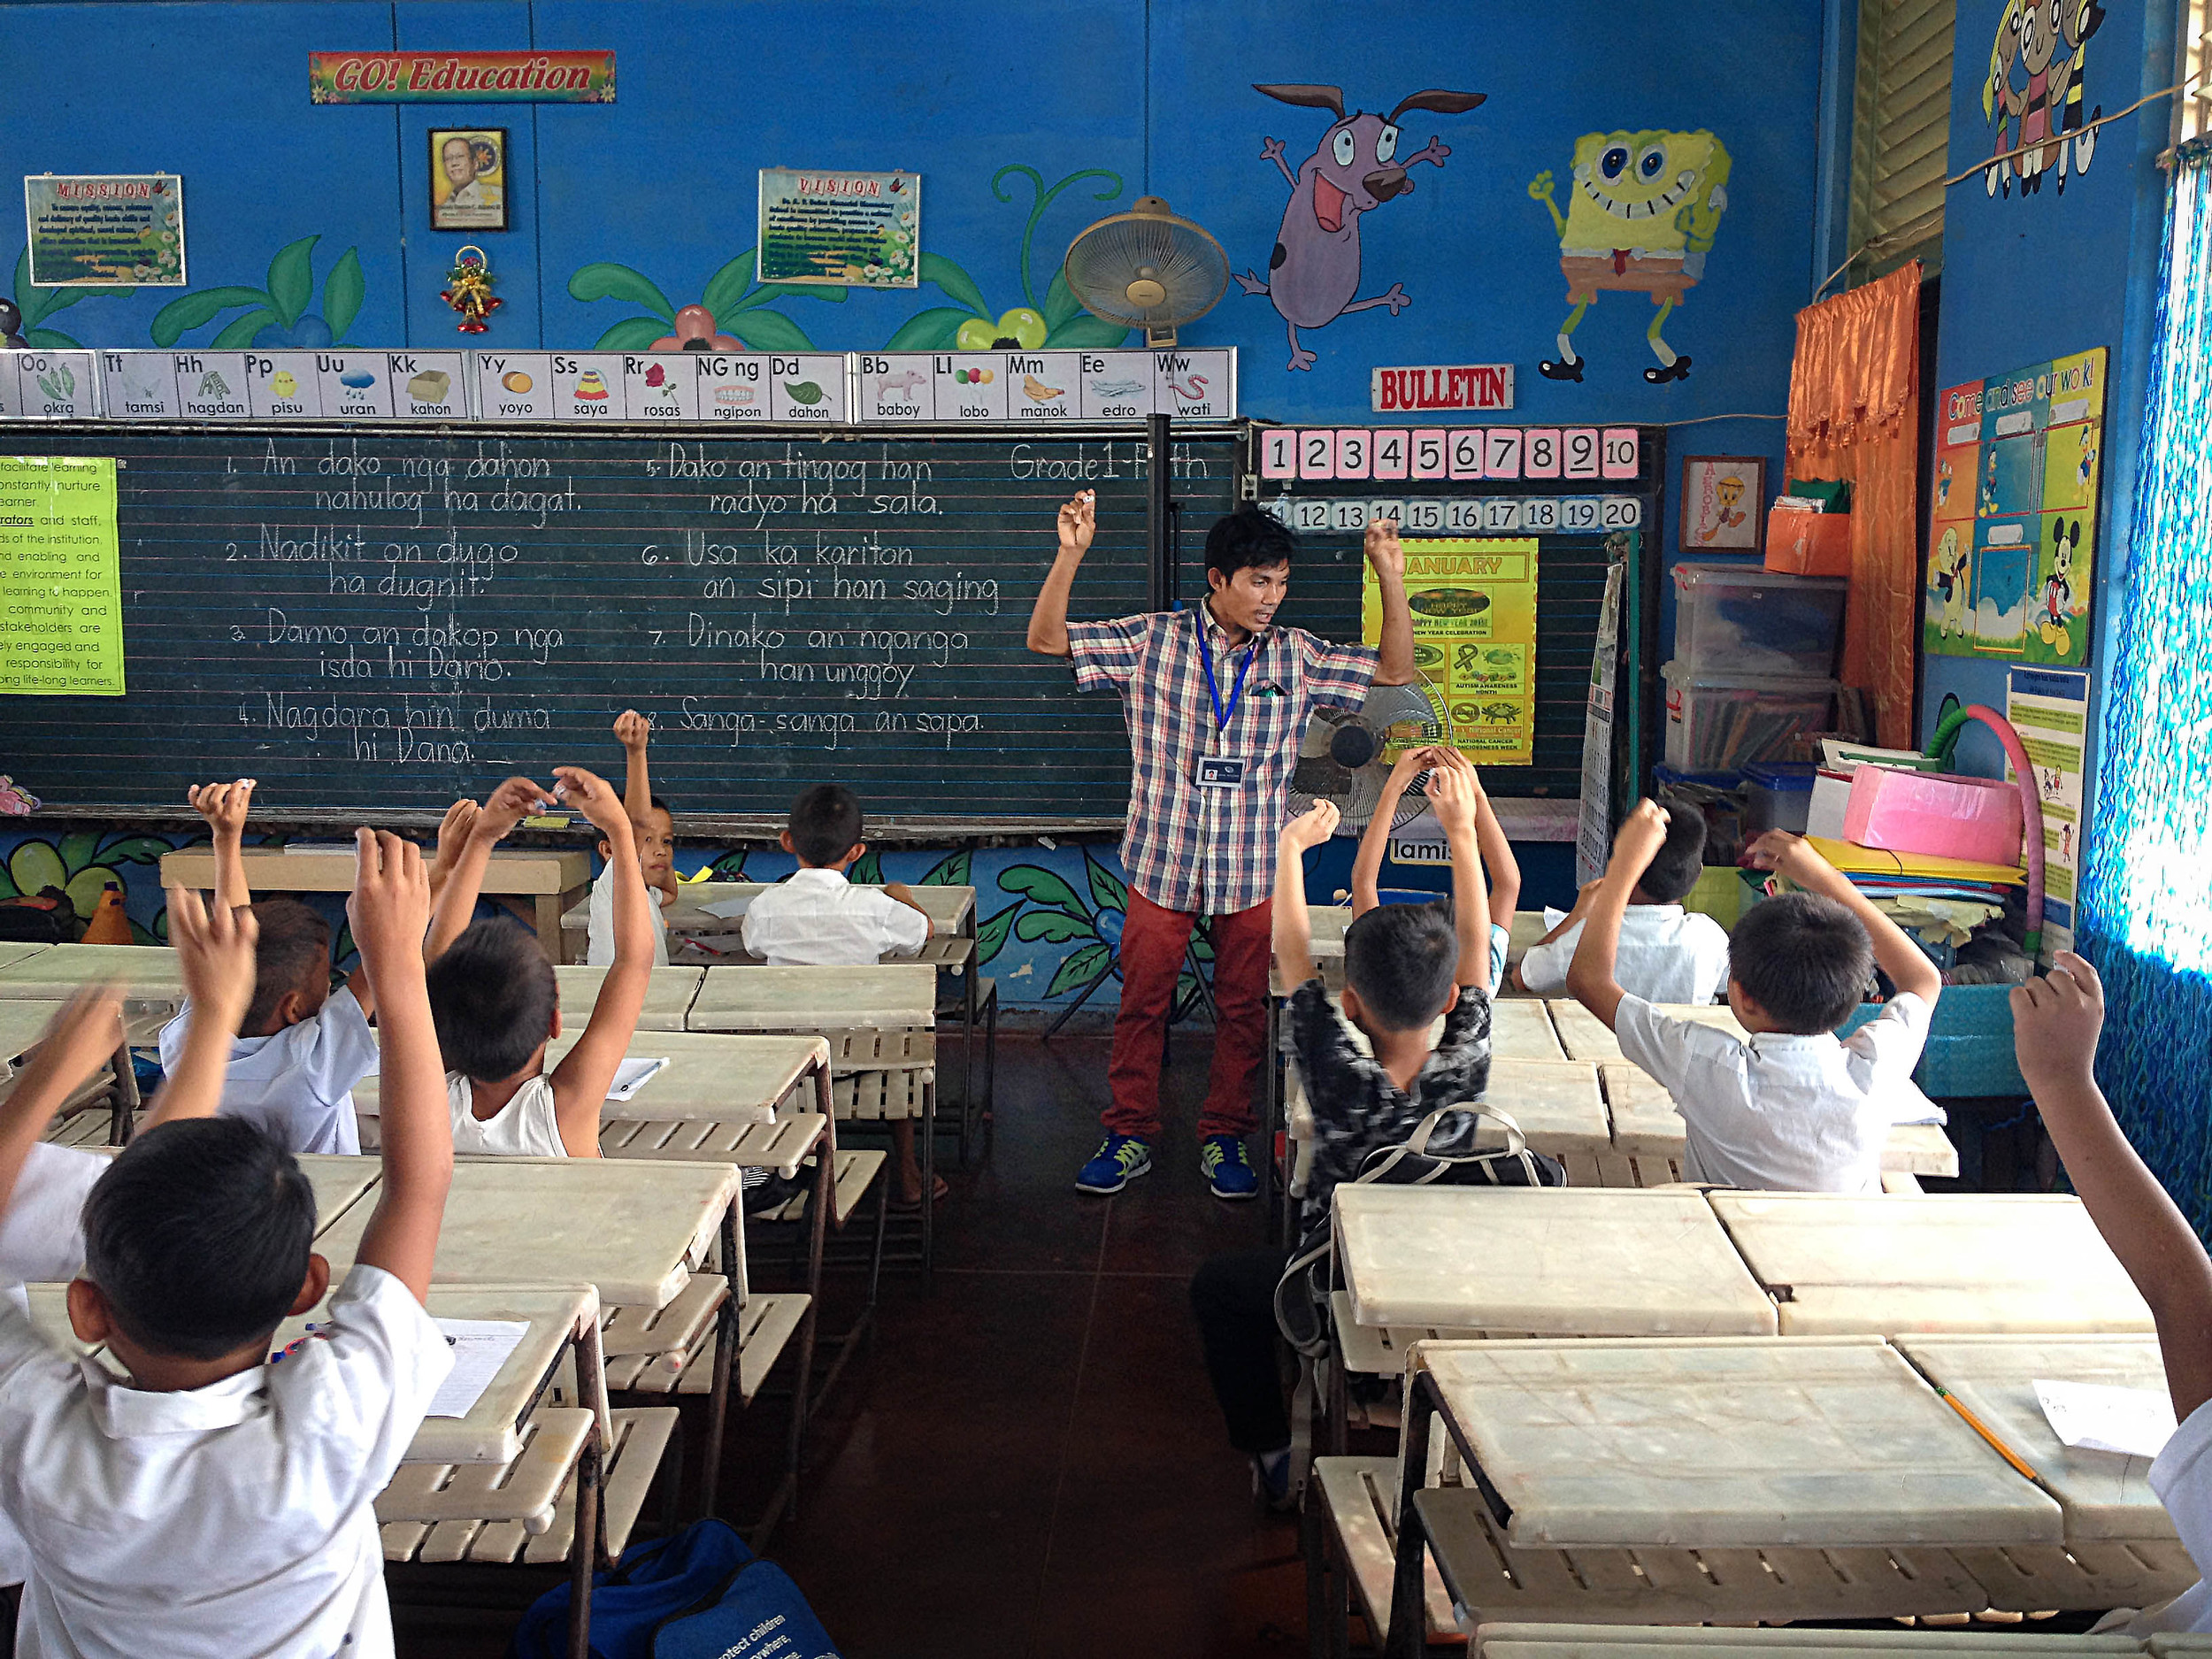 Jovic Roldan, our newest employee in the Philippines, leads a classroom of students in an interactive literacy exercise. The students, despite being in grades 3-5, still struggle with basic letter recognition.